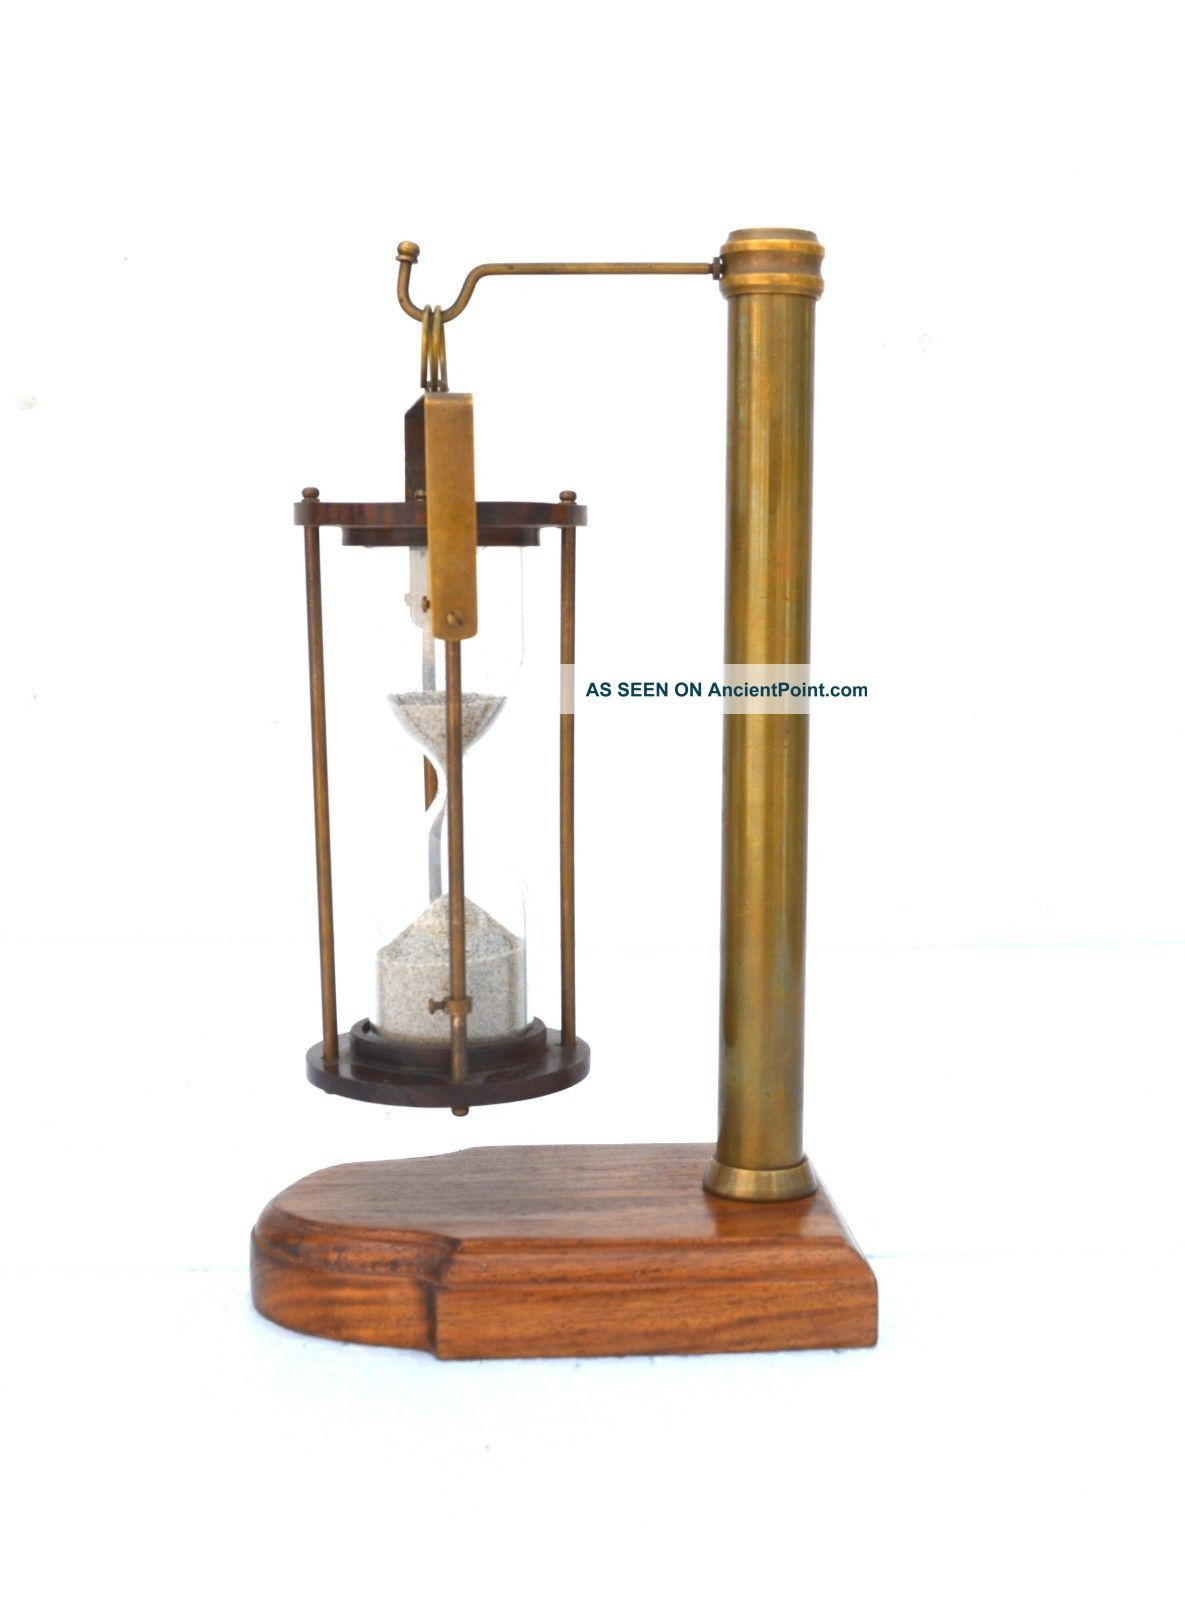 Nautical Brass Hanging Hourglass Sand Timer Wooden Vintage Collecticble Decor Compasses photo